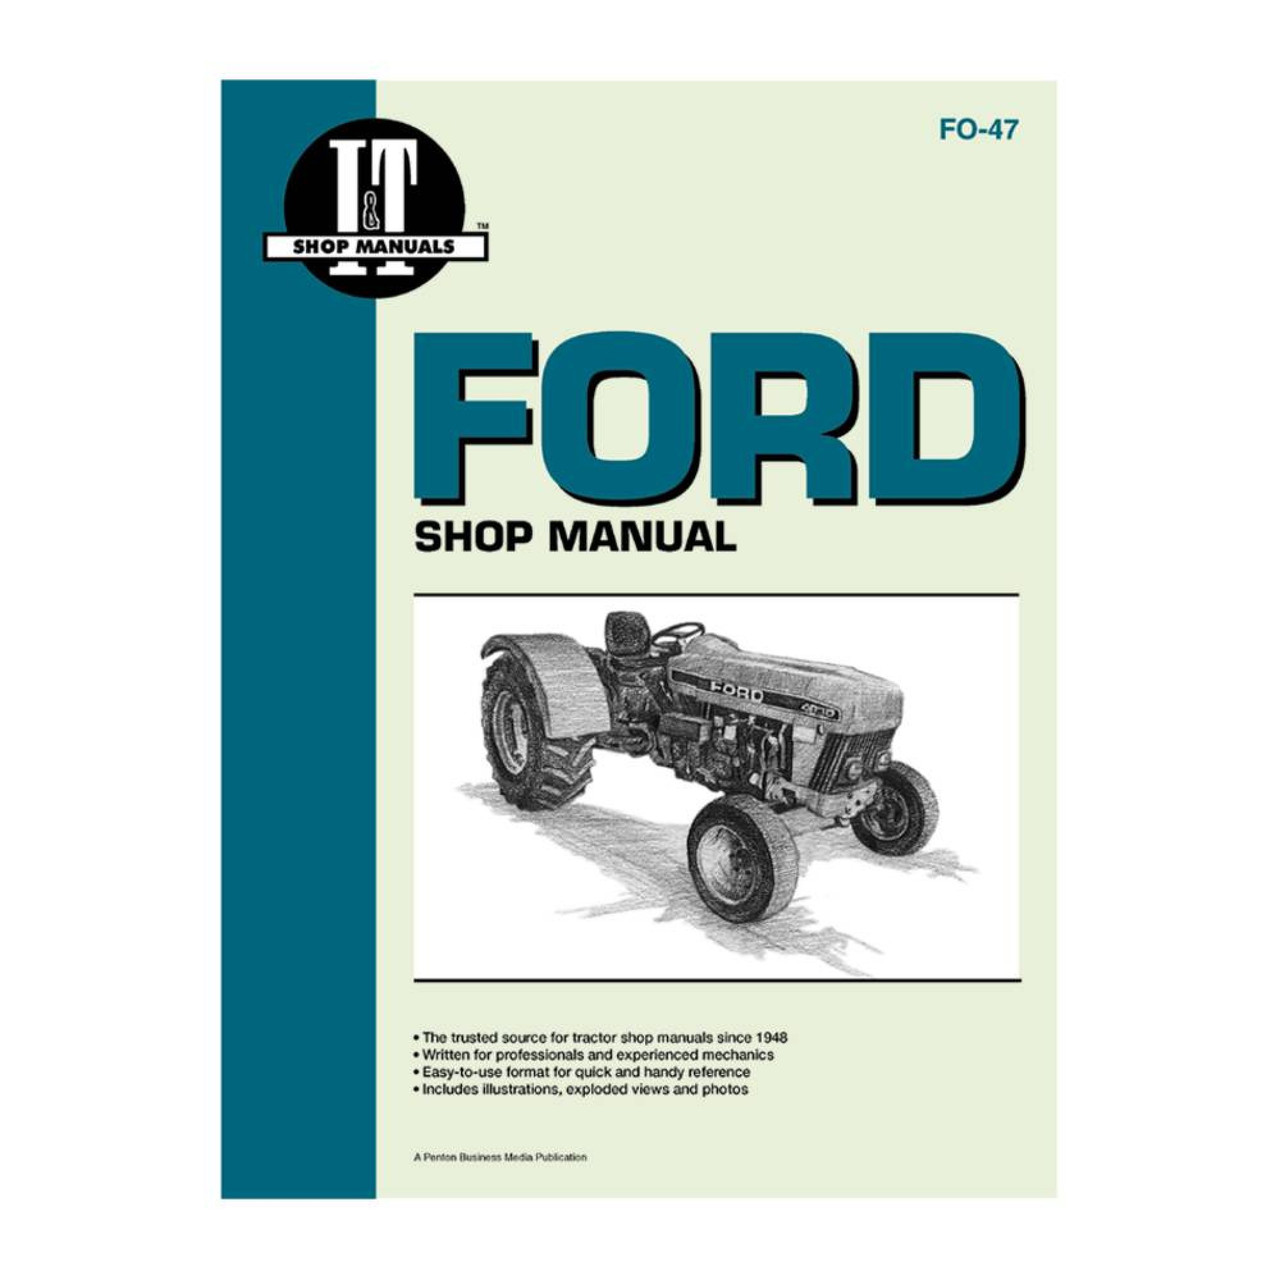 New Service Manual For Ford New Holland Tractor 3230 3430 3930 4630 on